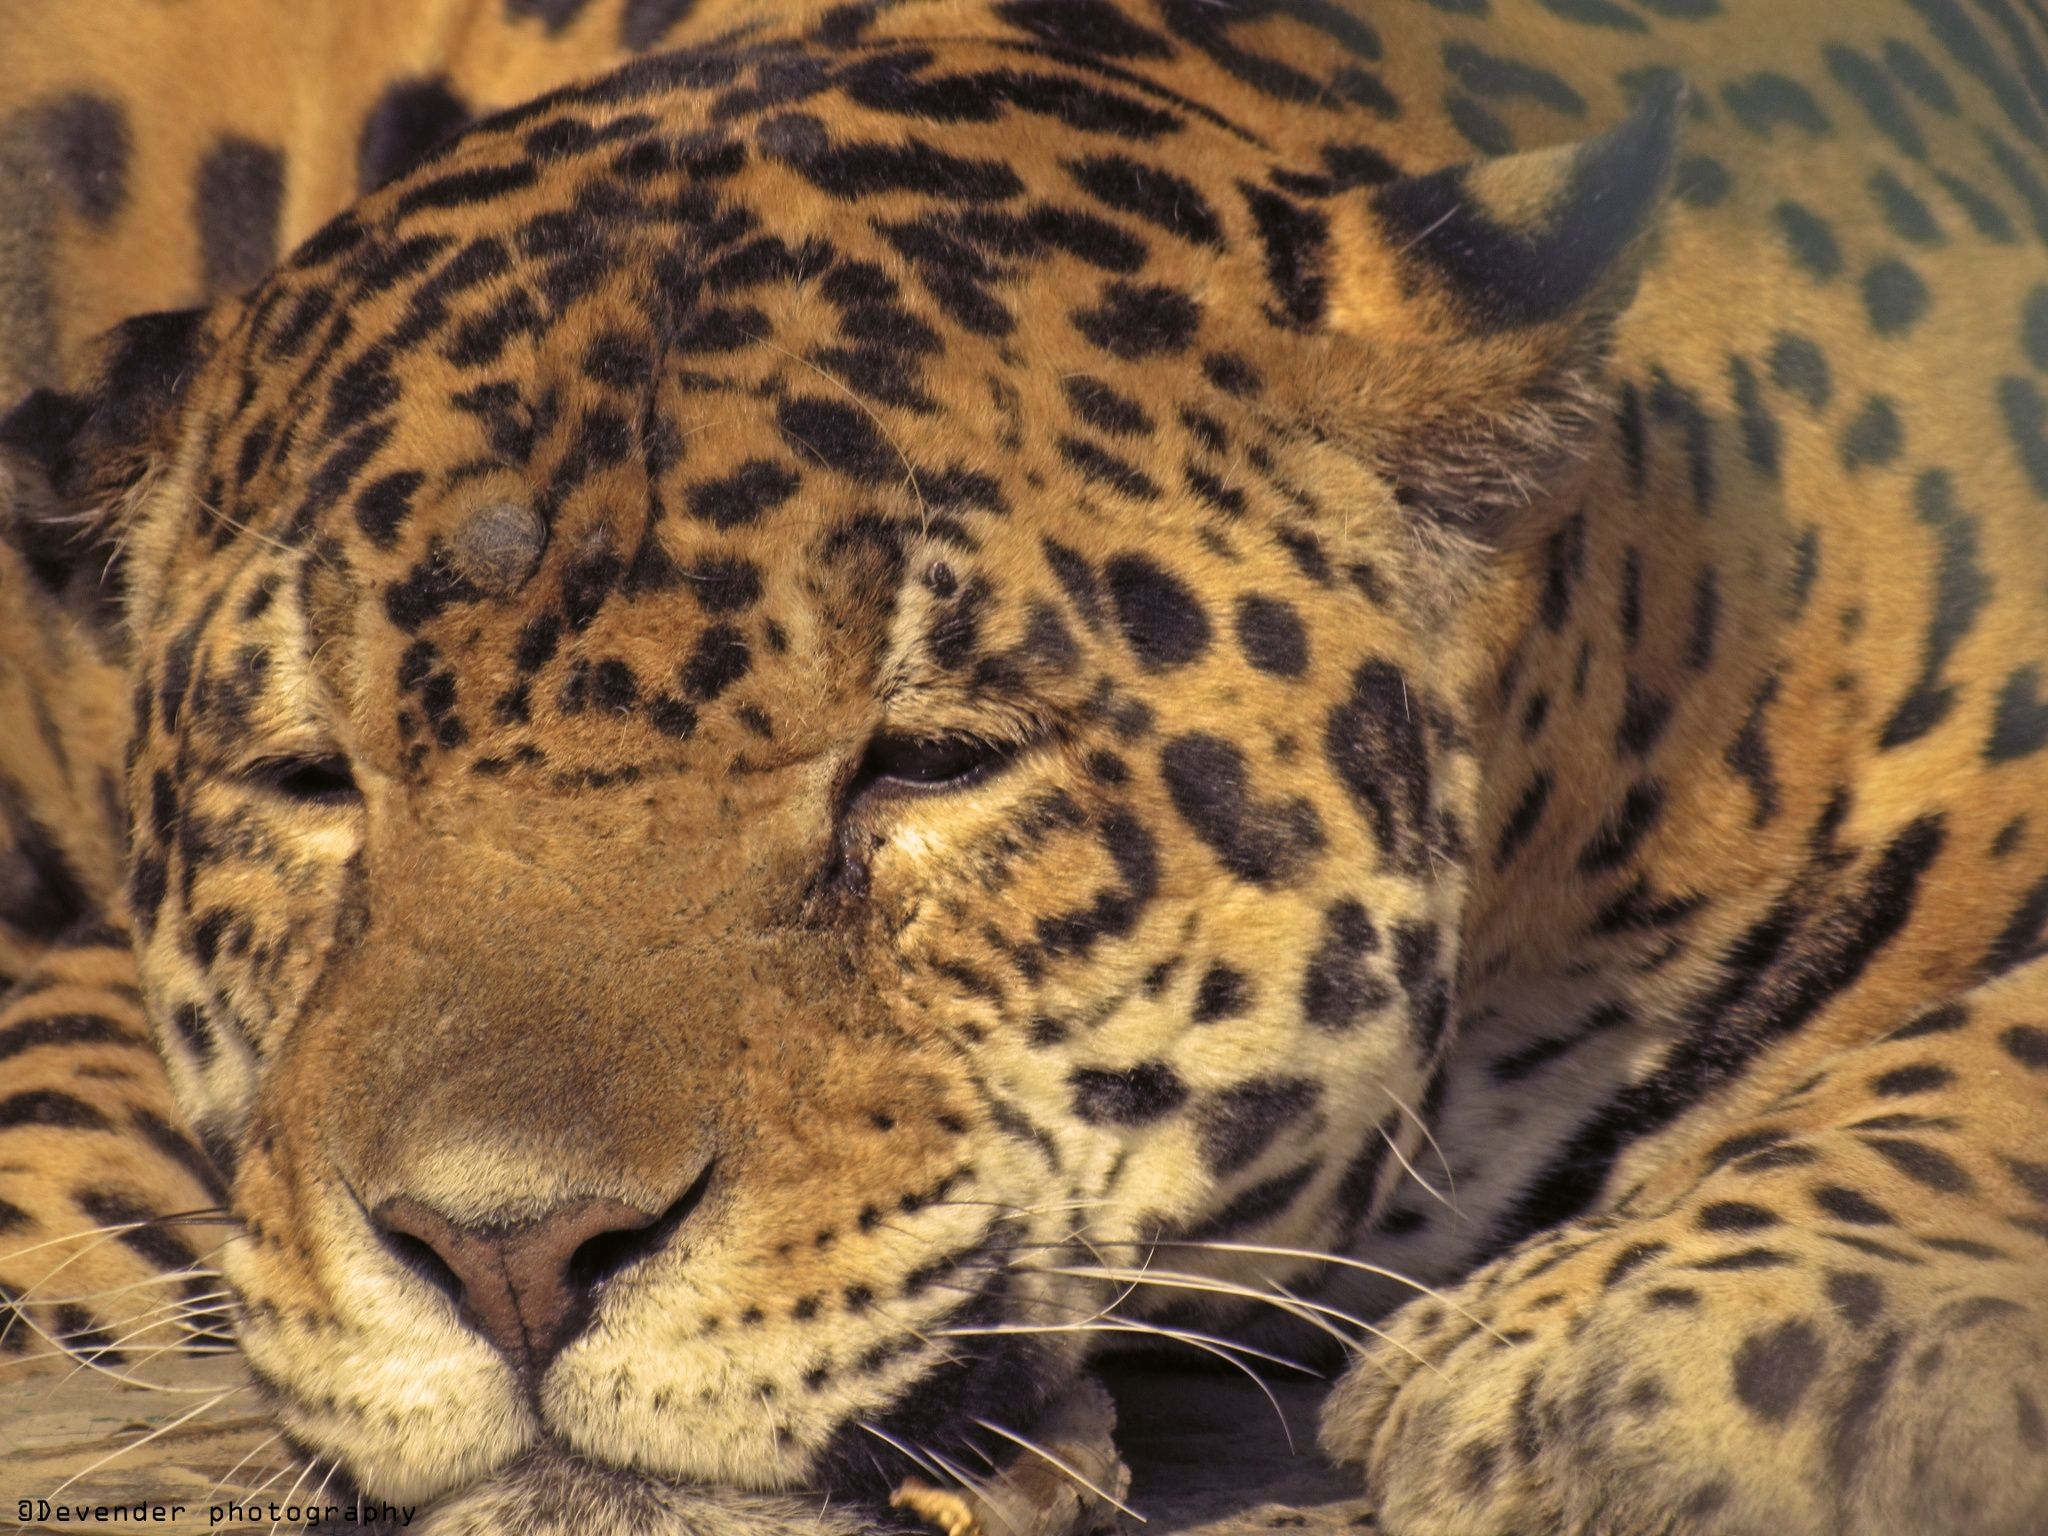 Leopard by devender meena on 500px